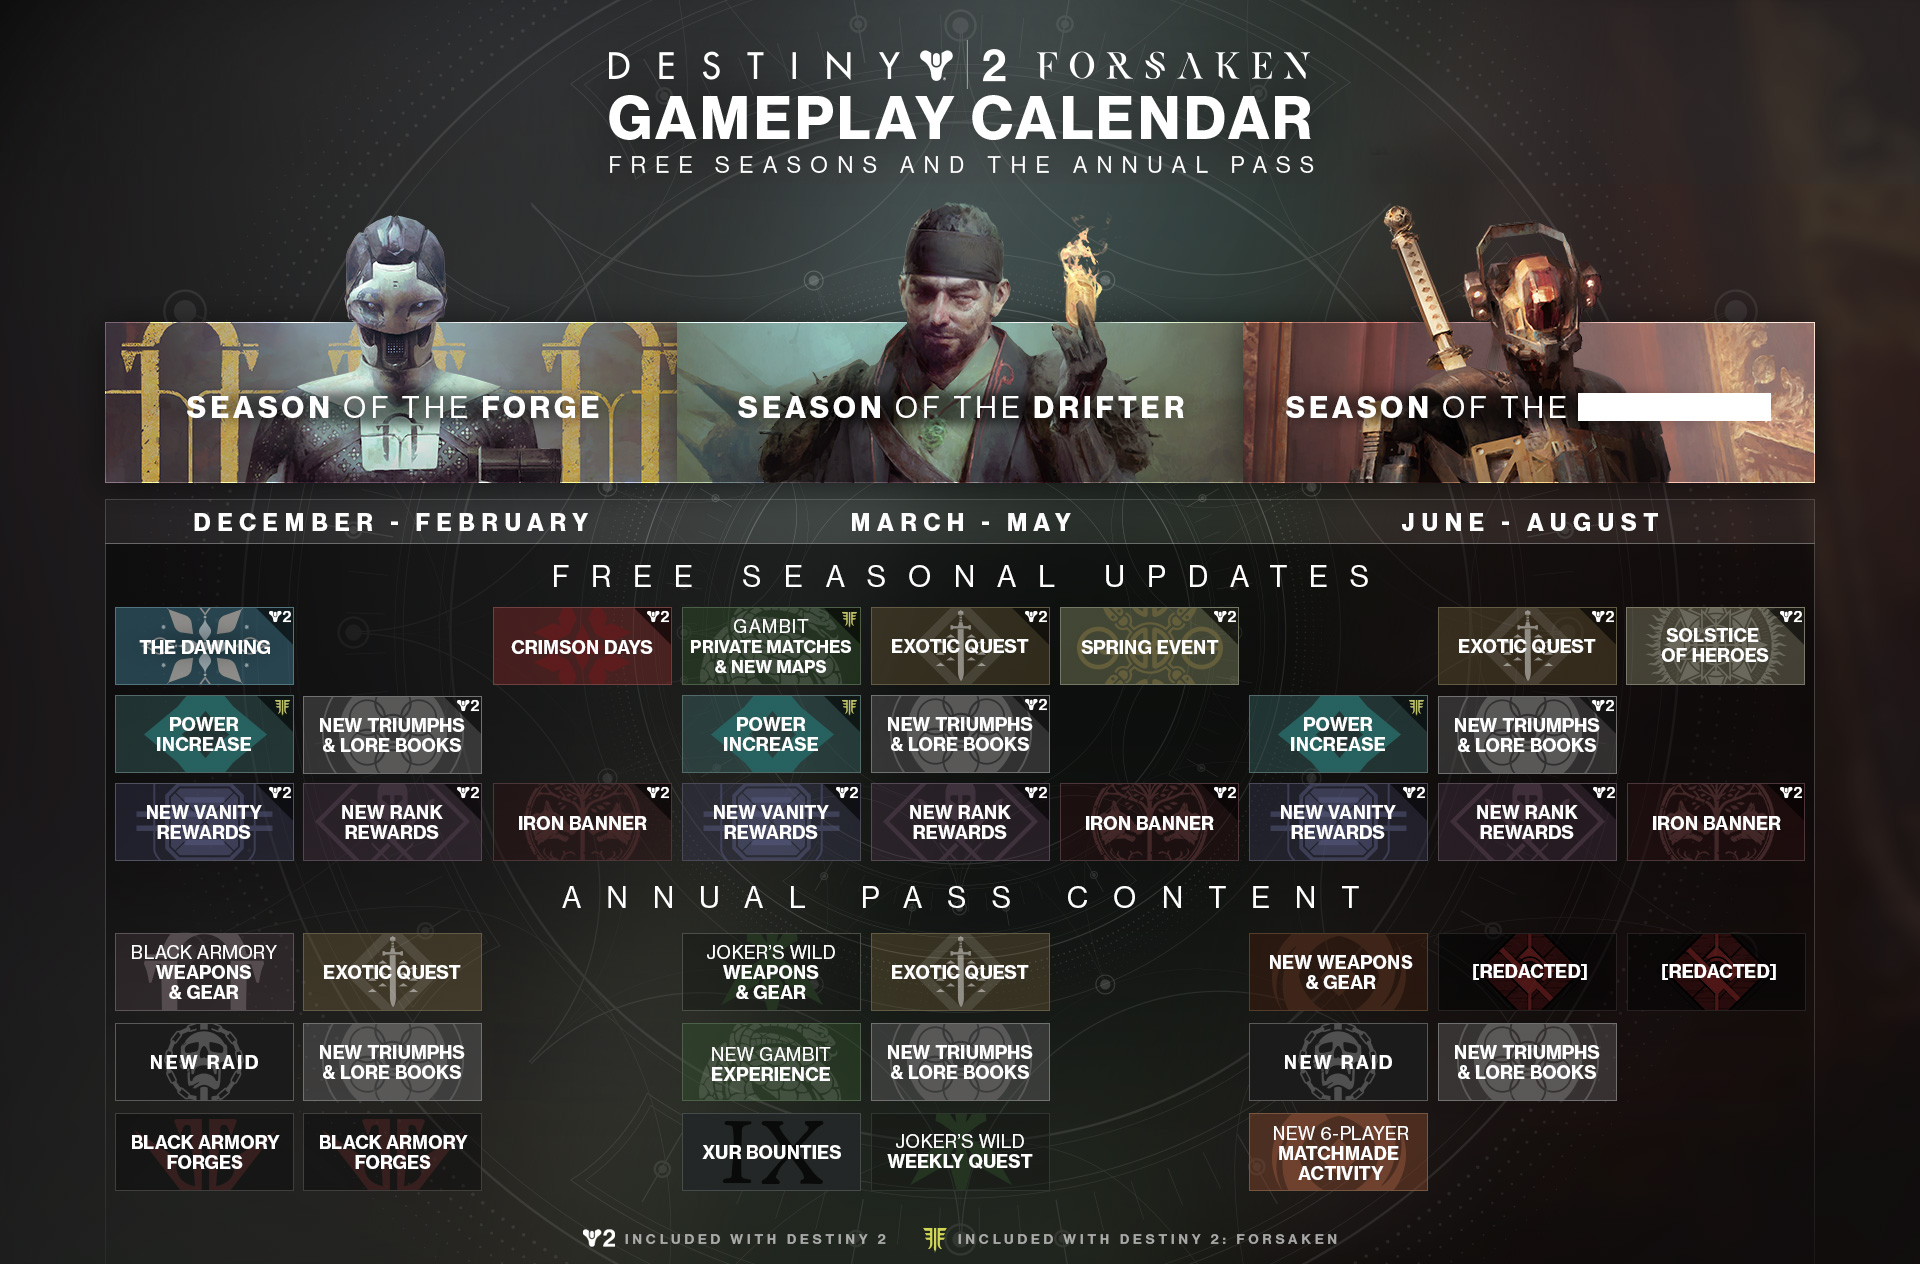 Bungie Shares Destiny 2 Roadmap for the Next Year or So